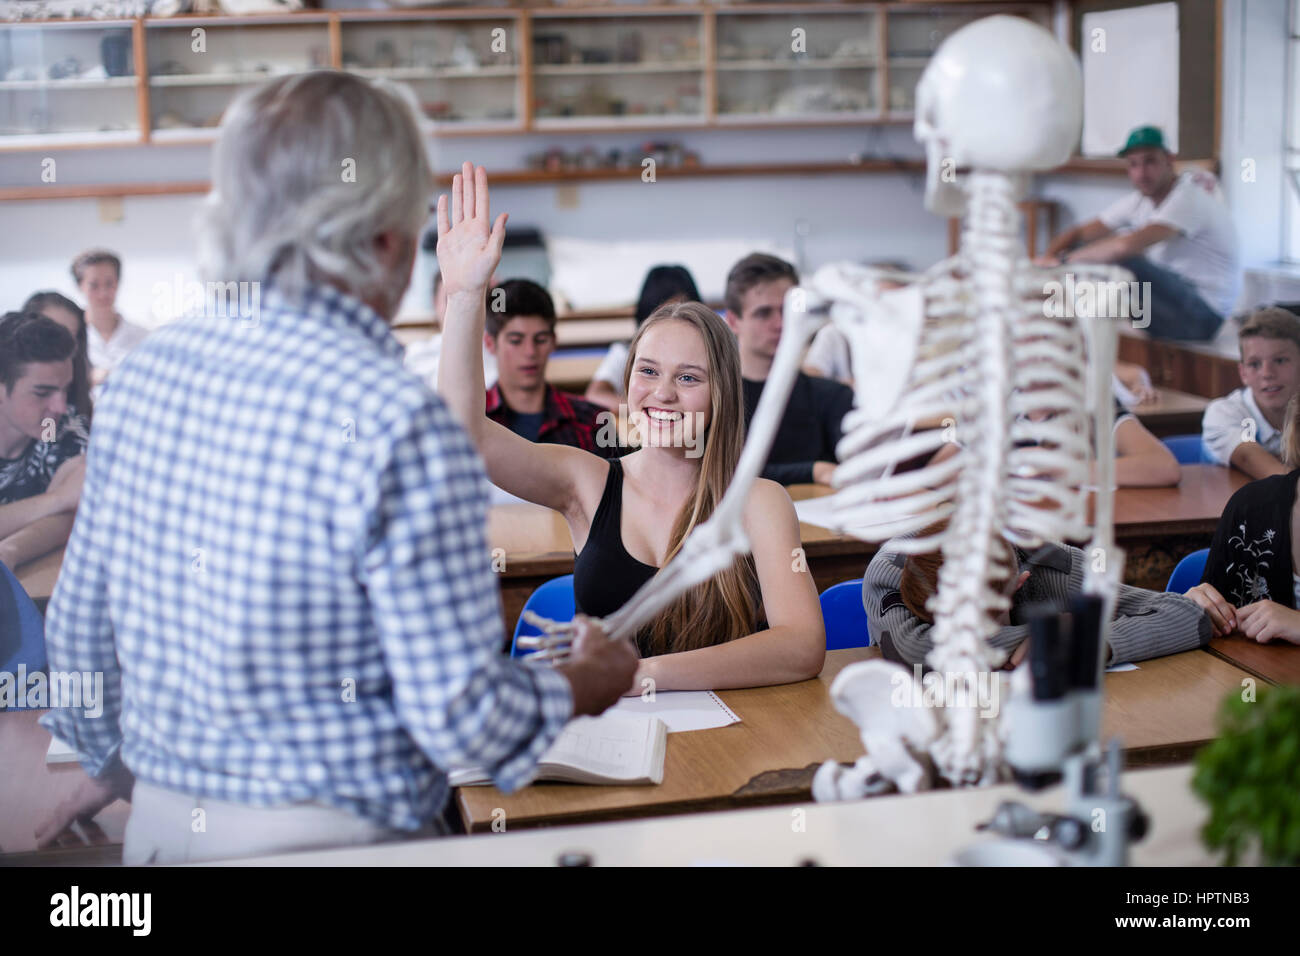 Class Room For Anatomy Stock Photos & Class Room For Anatomy Stock ...